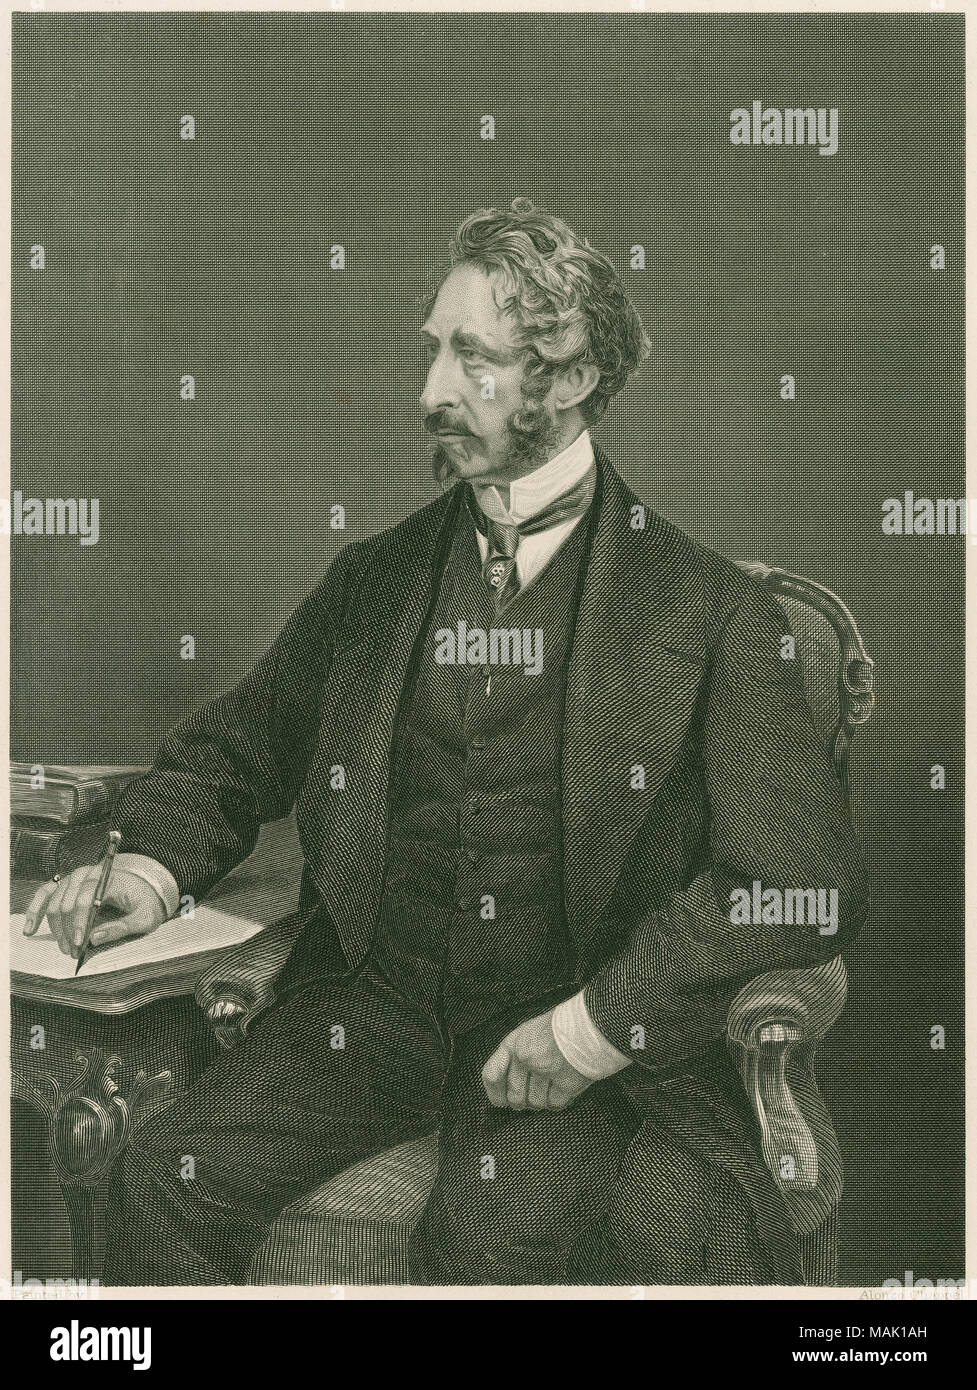 Antique c1885 steel engraving, Edward Bulwer-Lytton. Edward George Earle Lytton Bulwer-Lytton, 1st Baron Lytton (1803-1873) was an English novelist, poet, playwright, and politician. SOURCE: ORIGINAL ENGRAVING - Stock Image